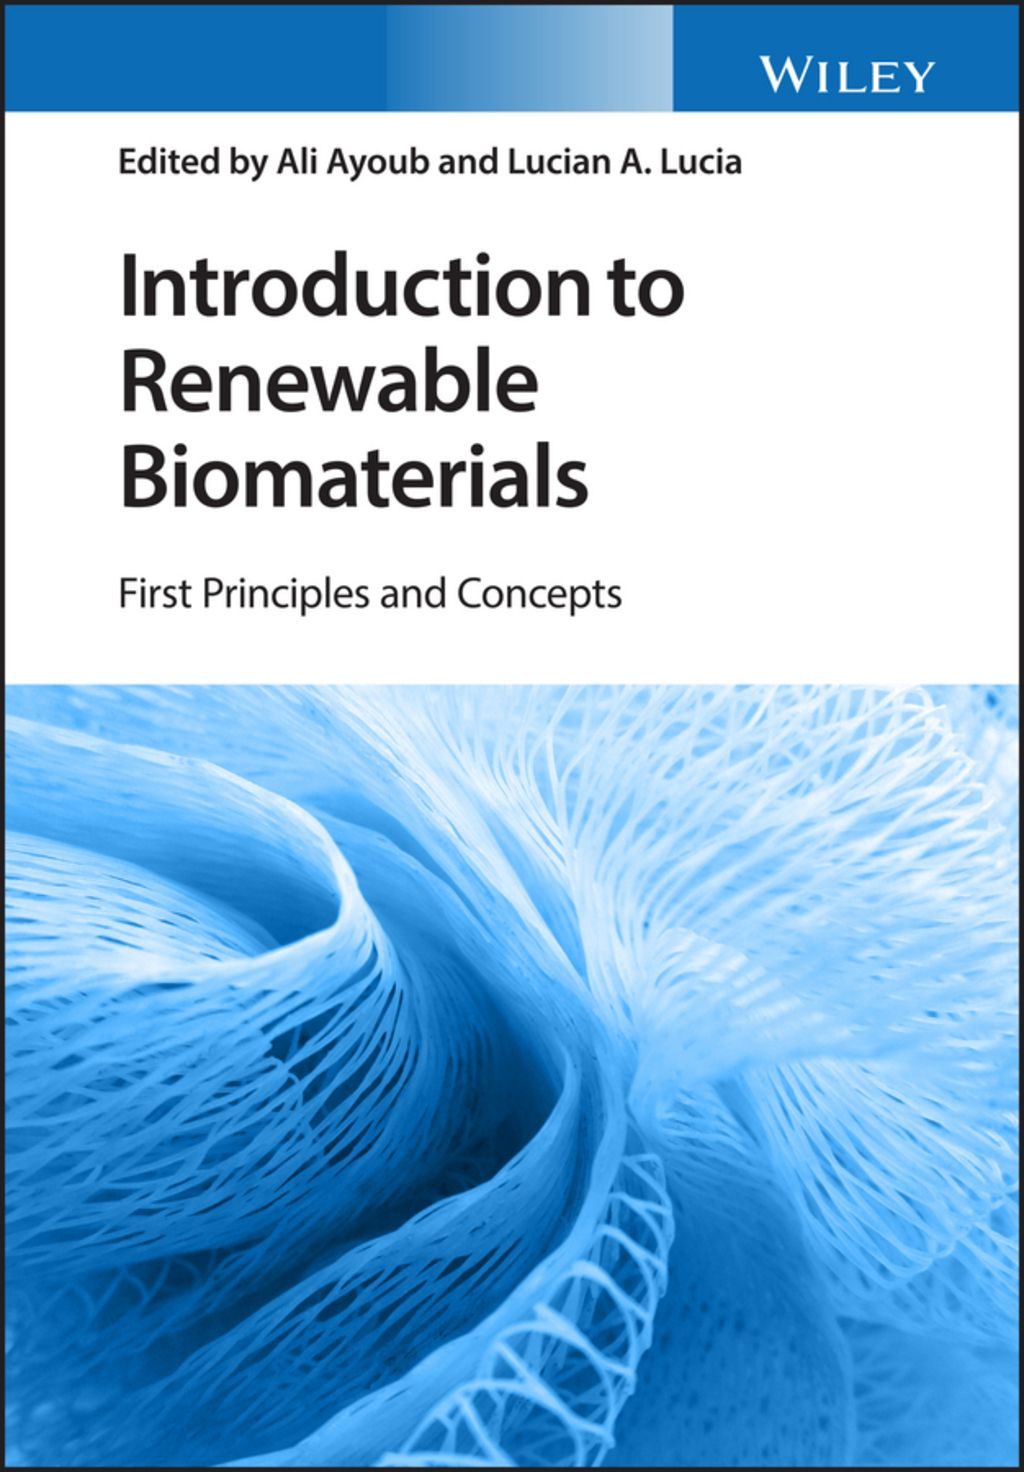 Introduction To Renewable Biomaterials First Principles And Concepts Ebook In 2021 First Principle Introduction Principles